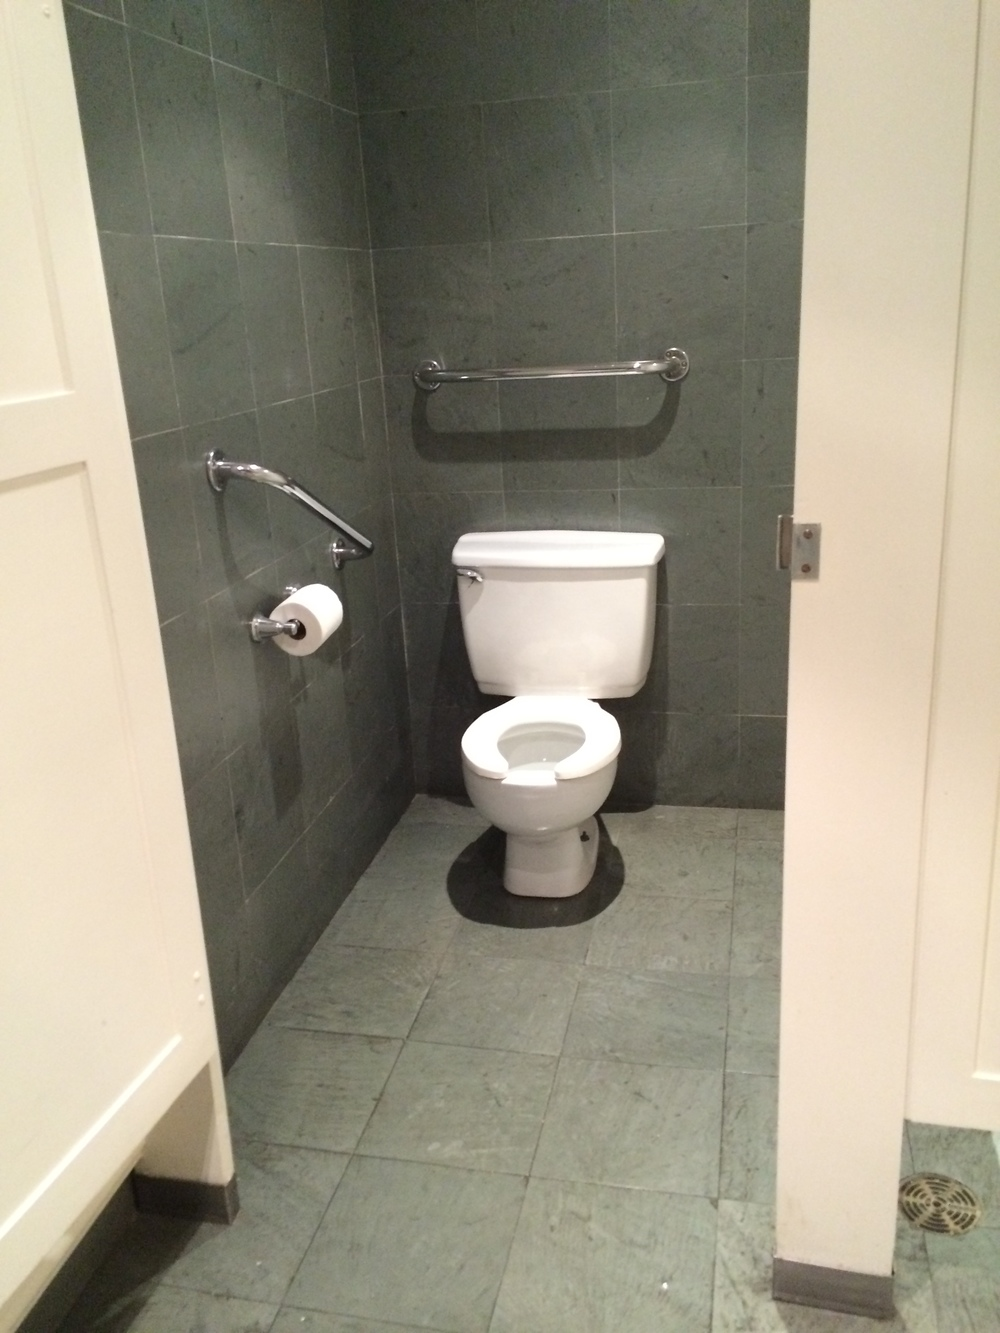 Picture of accessible washroom stall.